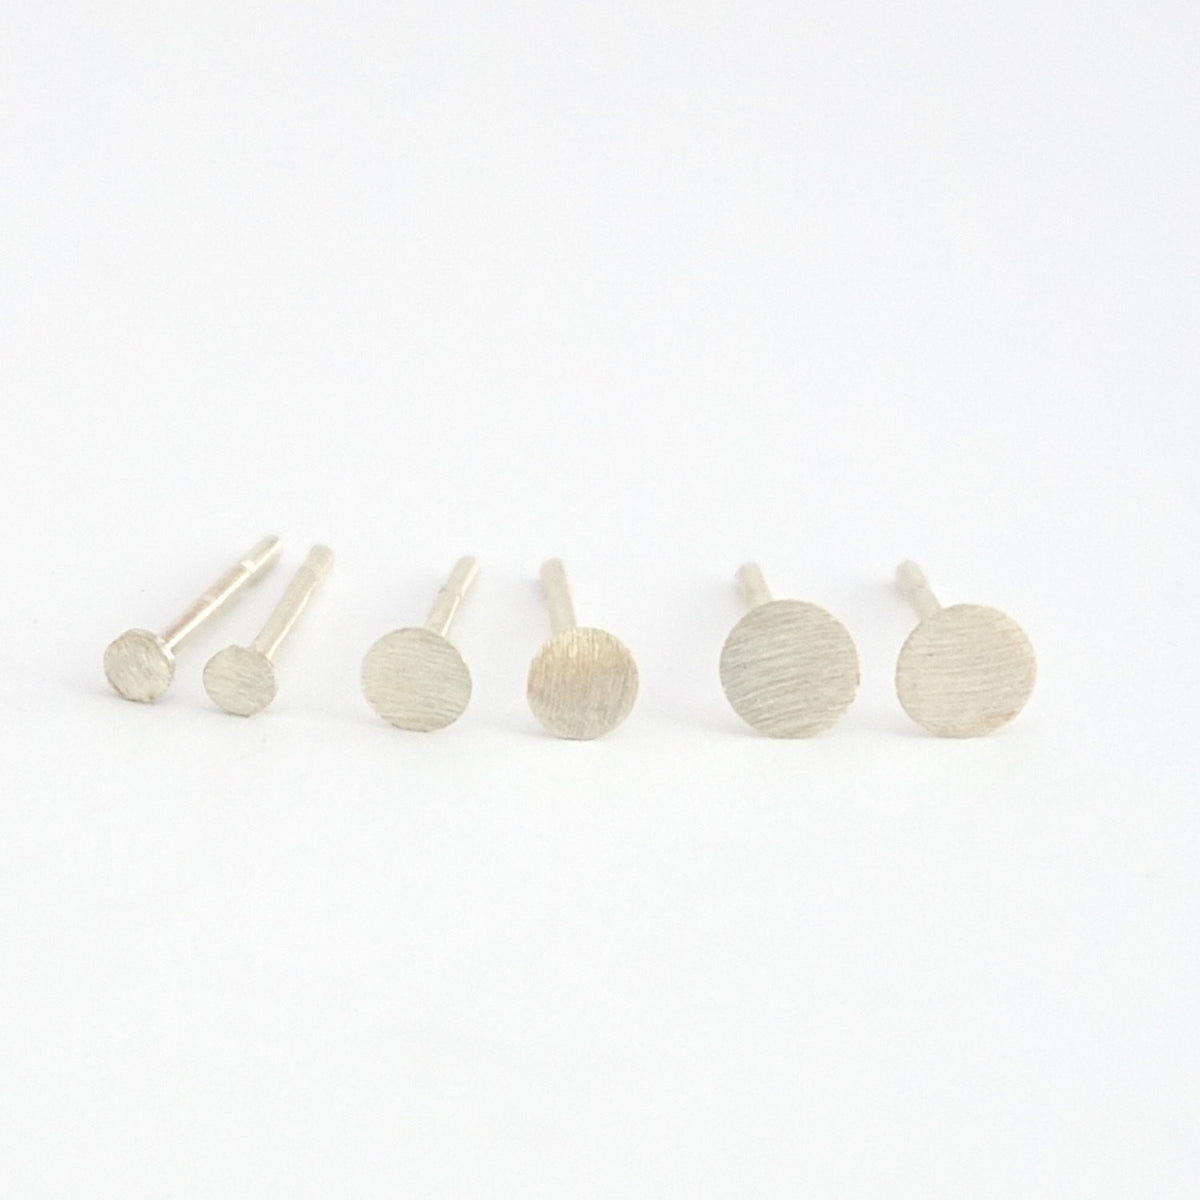 2mm, 3mm, & 4mm Flat Circle Gift Set 0157 - Virginia Wynne Designs